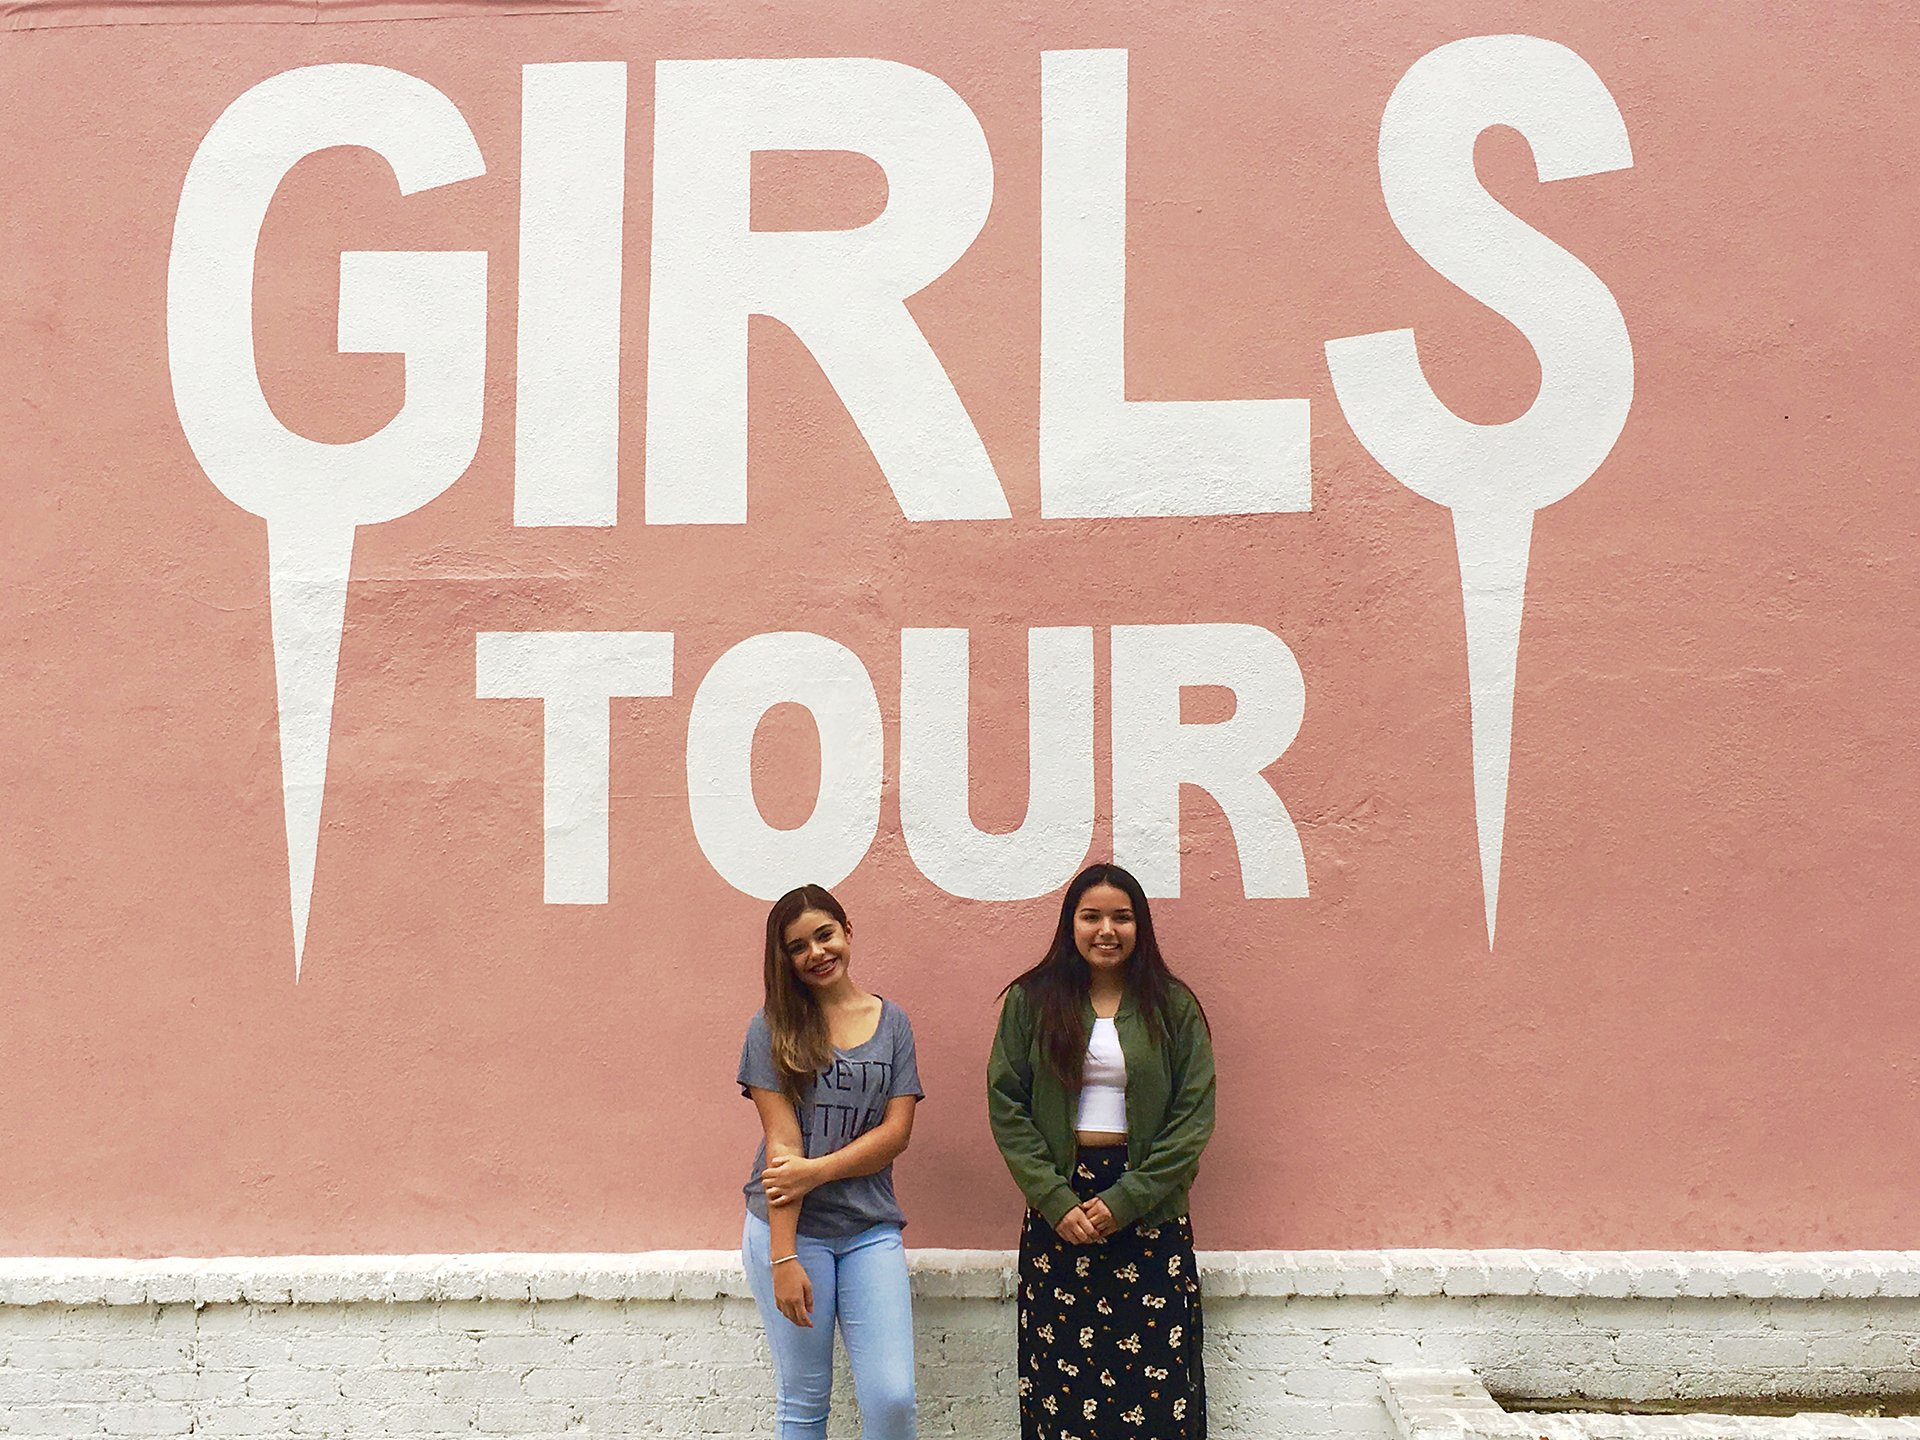 Somehow a photo of the girls with this mural seemed appropriate.